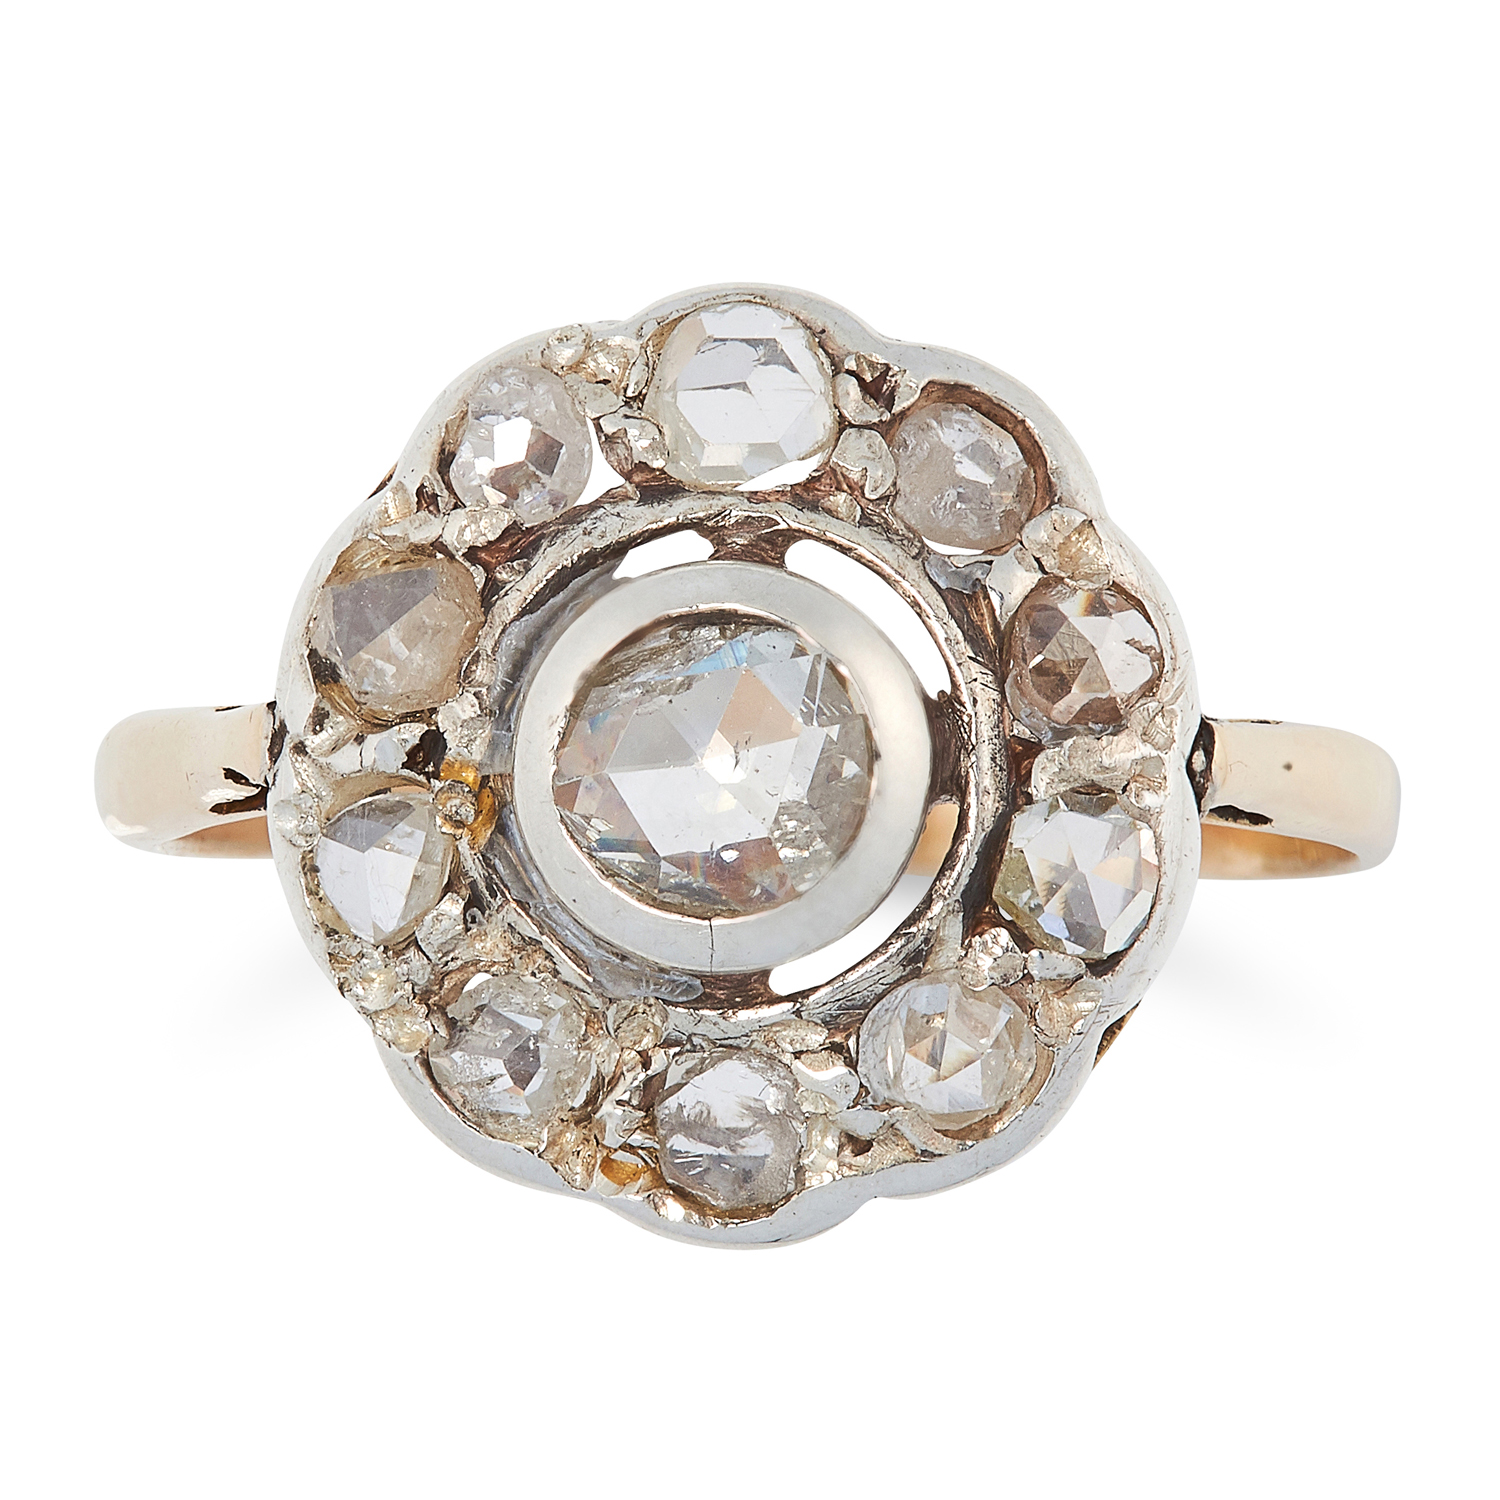 AN ANTIQUE DIAMOND CLUSTER RING, 19TH CENTURY in yellow gold and silver, set with a cluster of